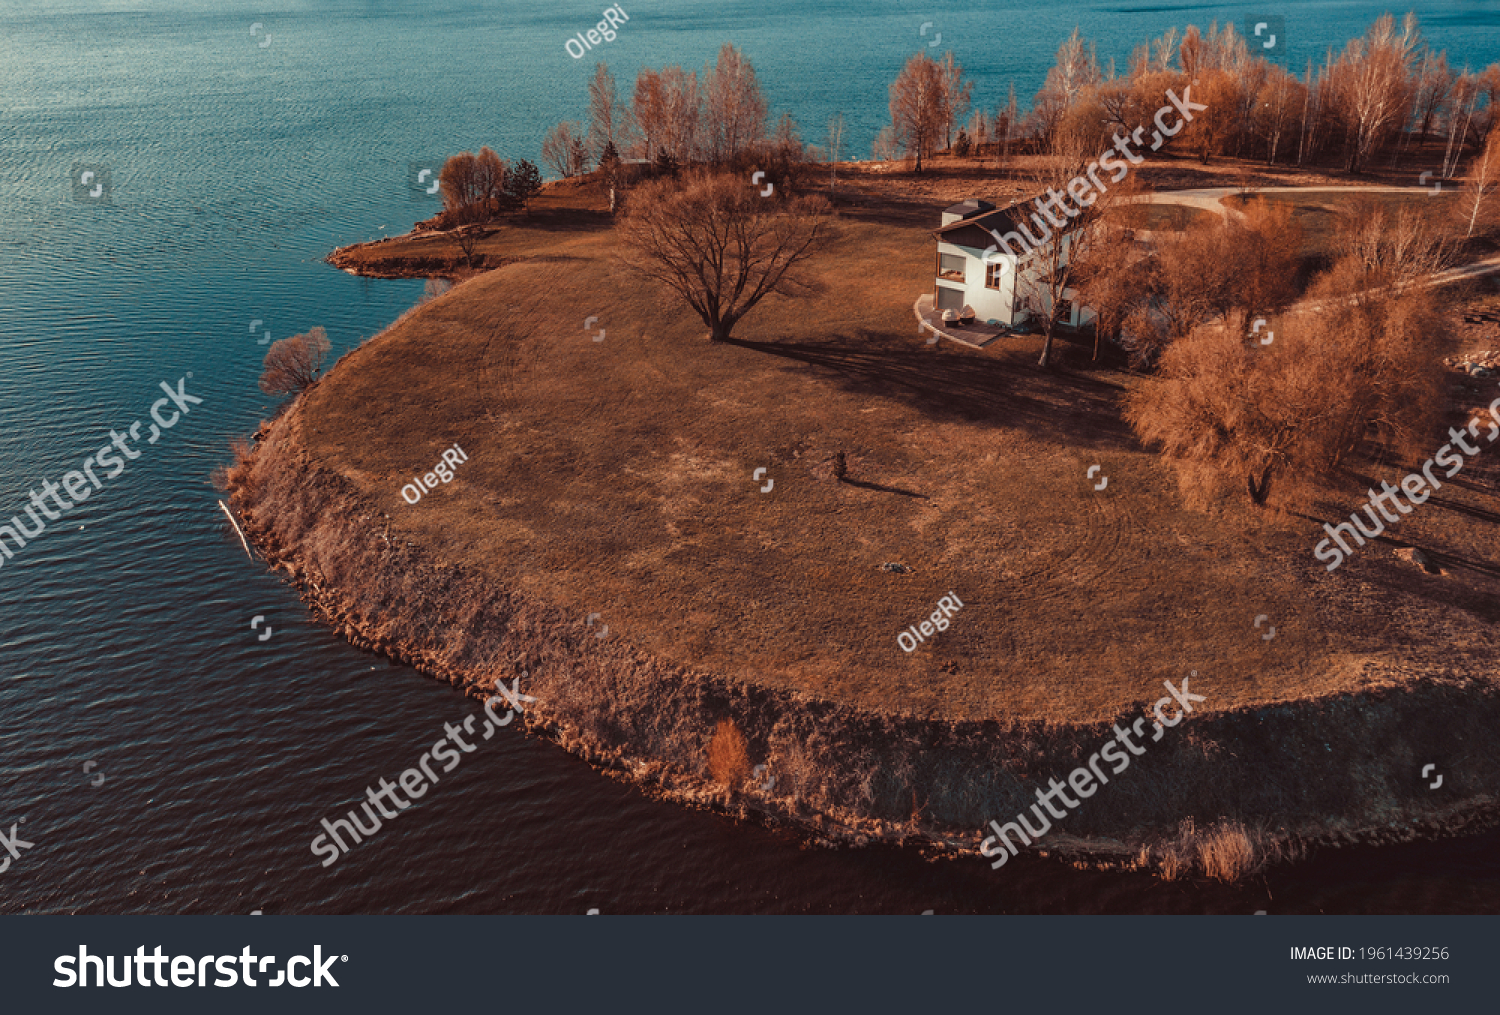 View on red holiday cabin by a lake in Stockholm archipelago, Sweden. Wooden cottage, sauna on shore. Tiny house near the water. Rocky small island, islet in water. Buildings surrounded by green trees #1961439256